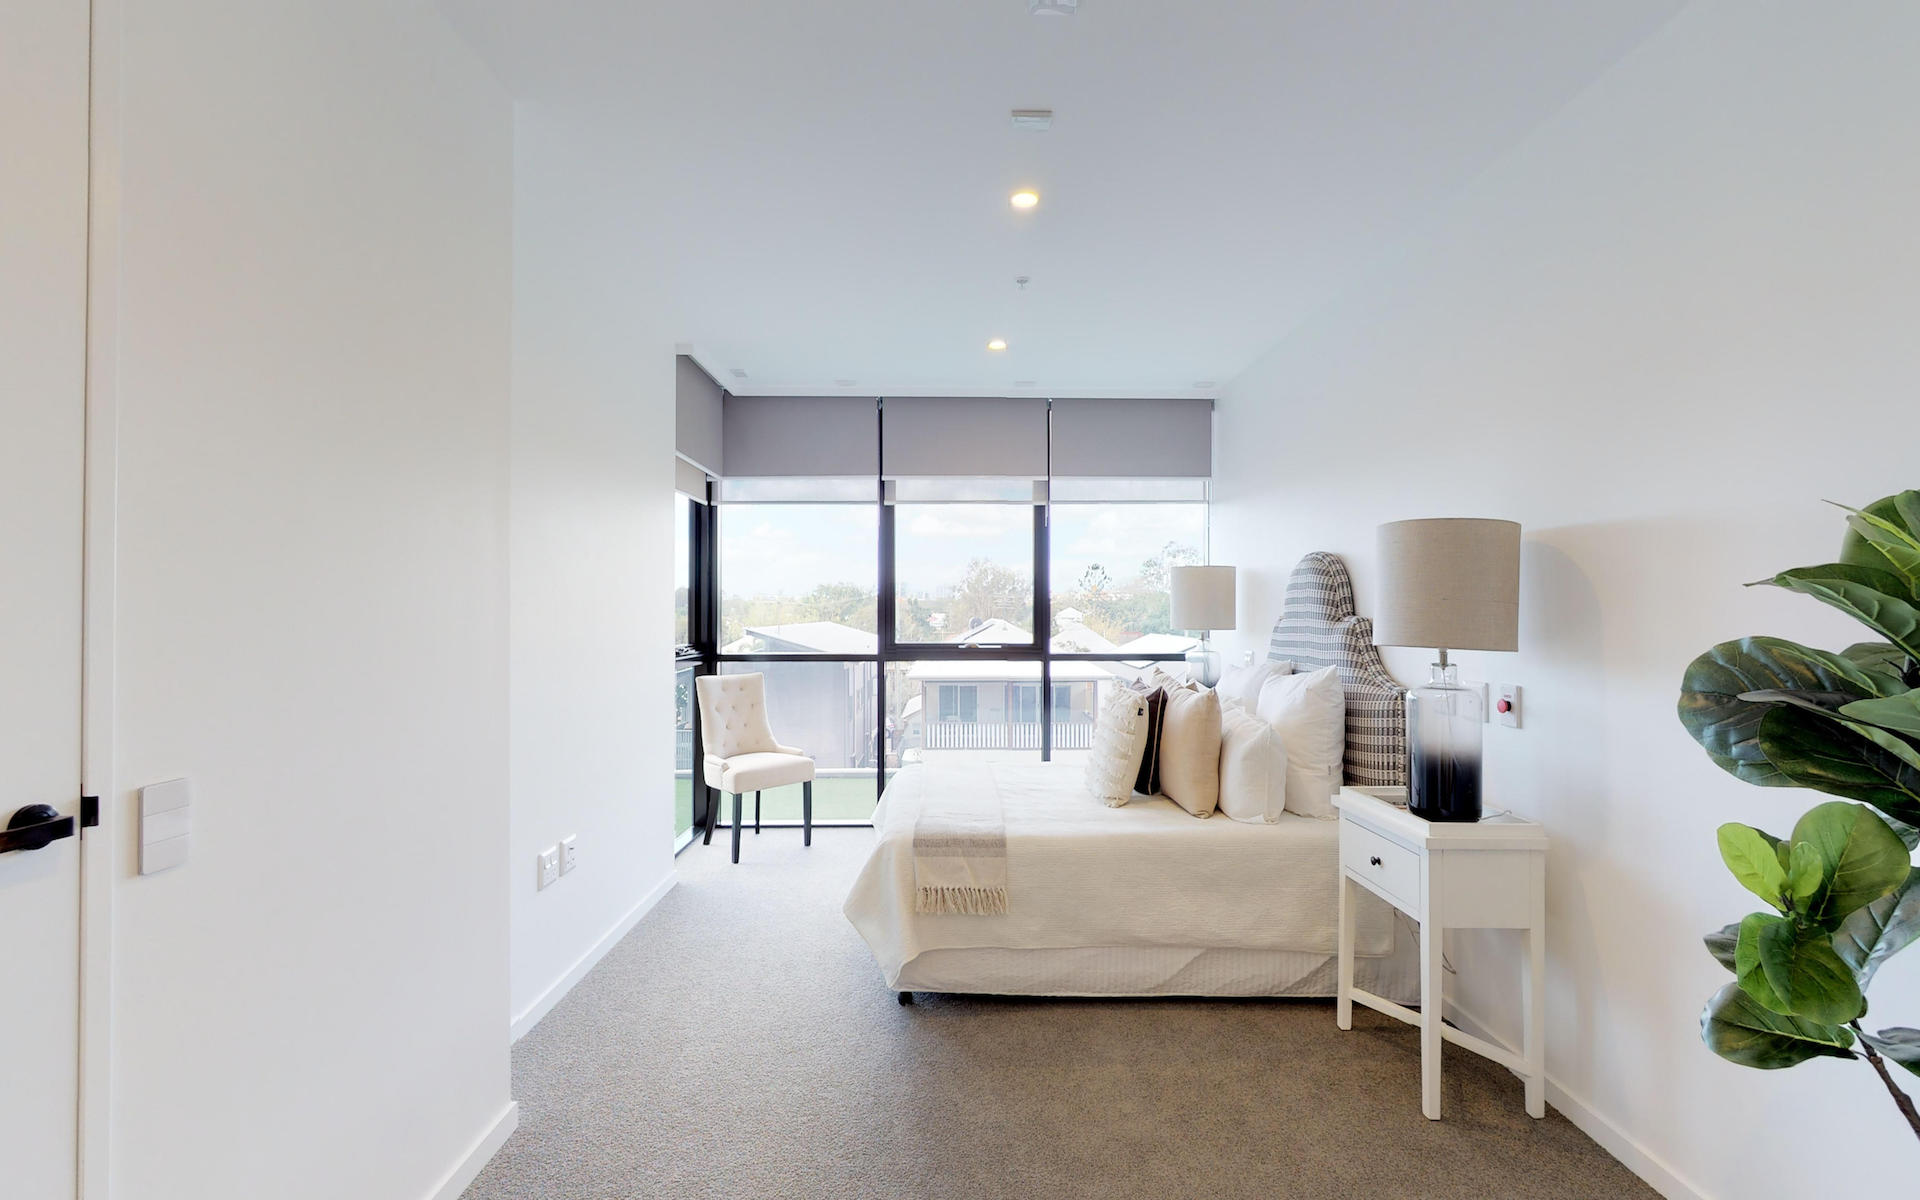 The Mews, Woolloongabba, Qld – Summer Housing